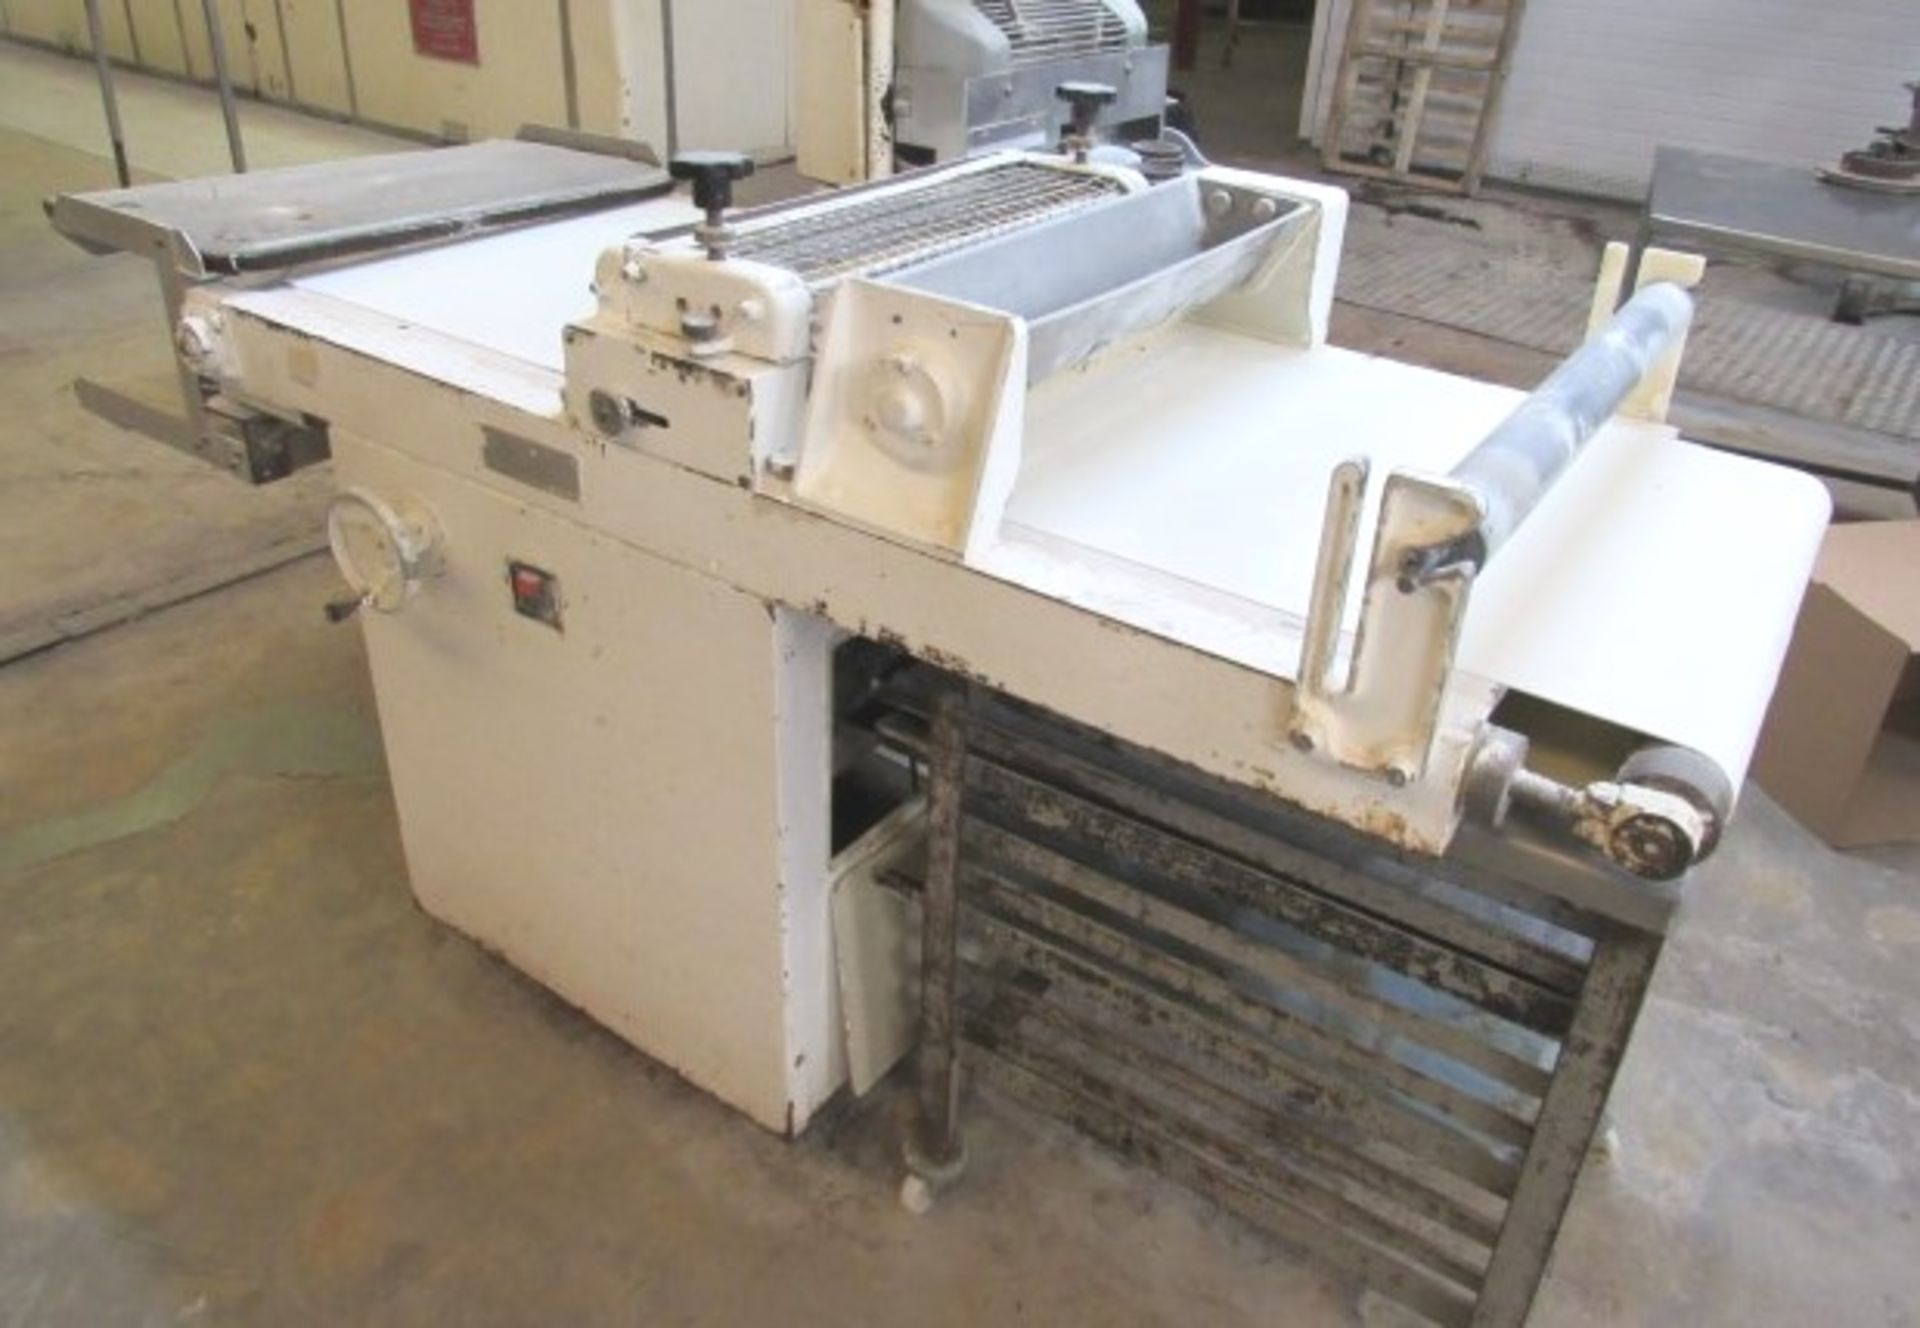 Lot 8 - Oddy automatic Pastry Cutter